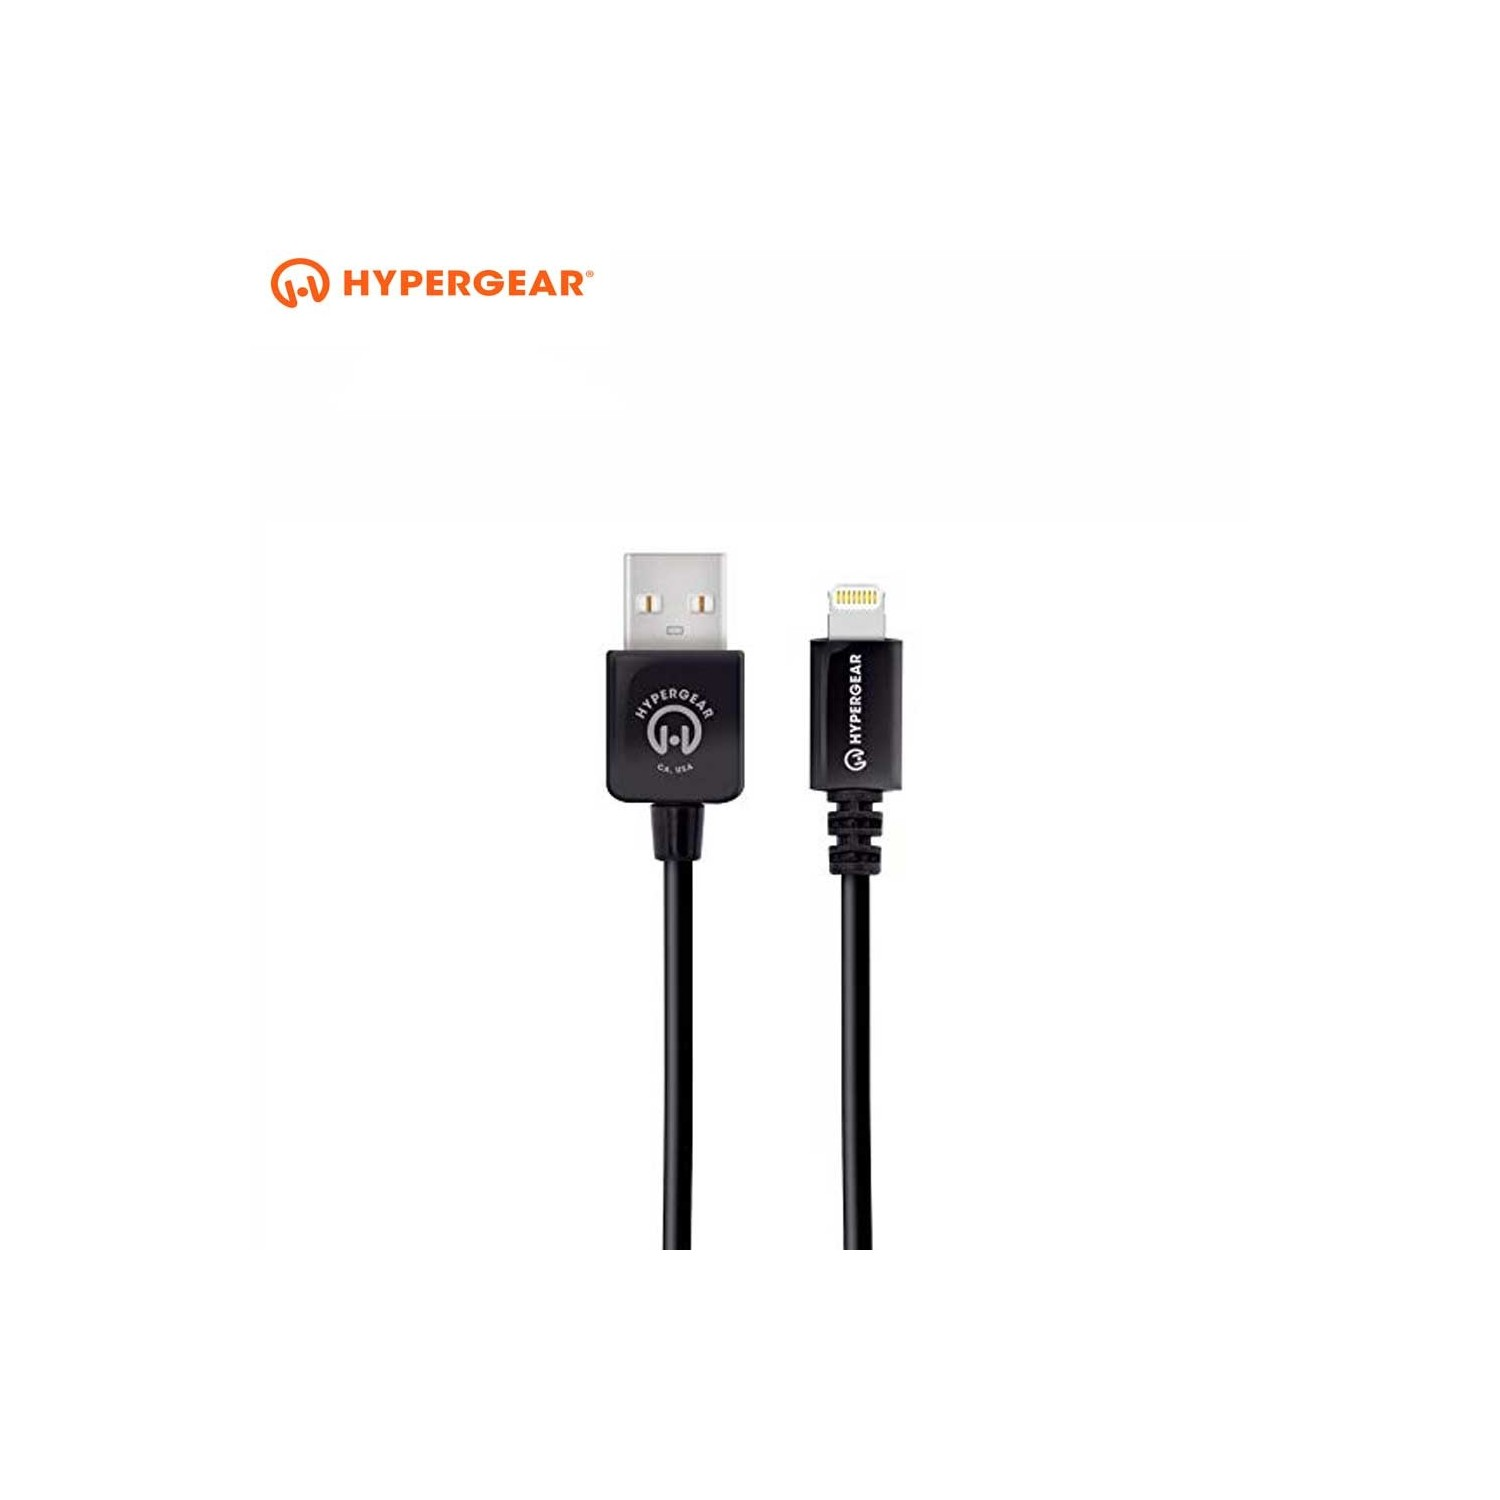 Charger - HyperGear All in One Dual USB Charger with lightning cable